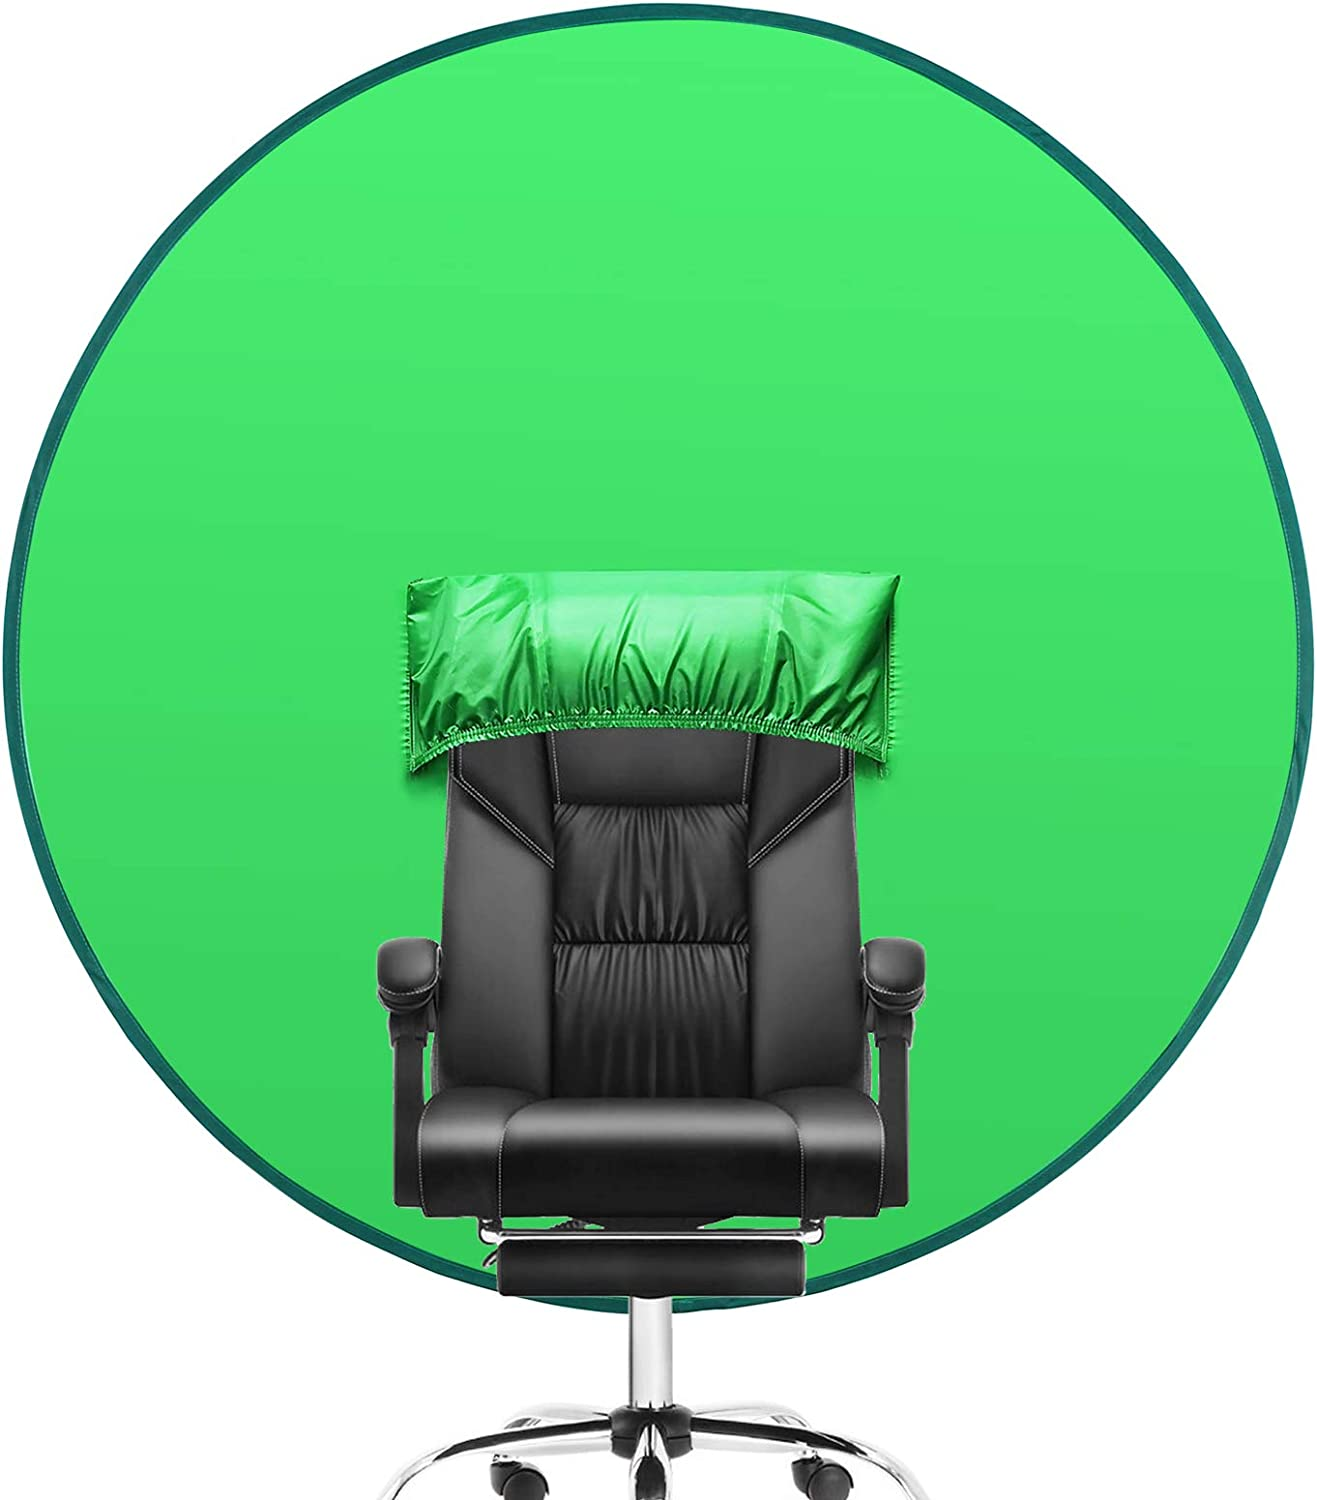 Oiwewly Green Screen Background for Chair (56''), Portable Collapsible Photography Backdrop for Home Office Video Conferencing YouTube Studio